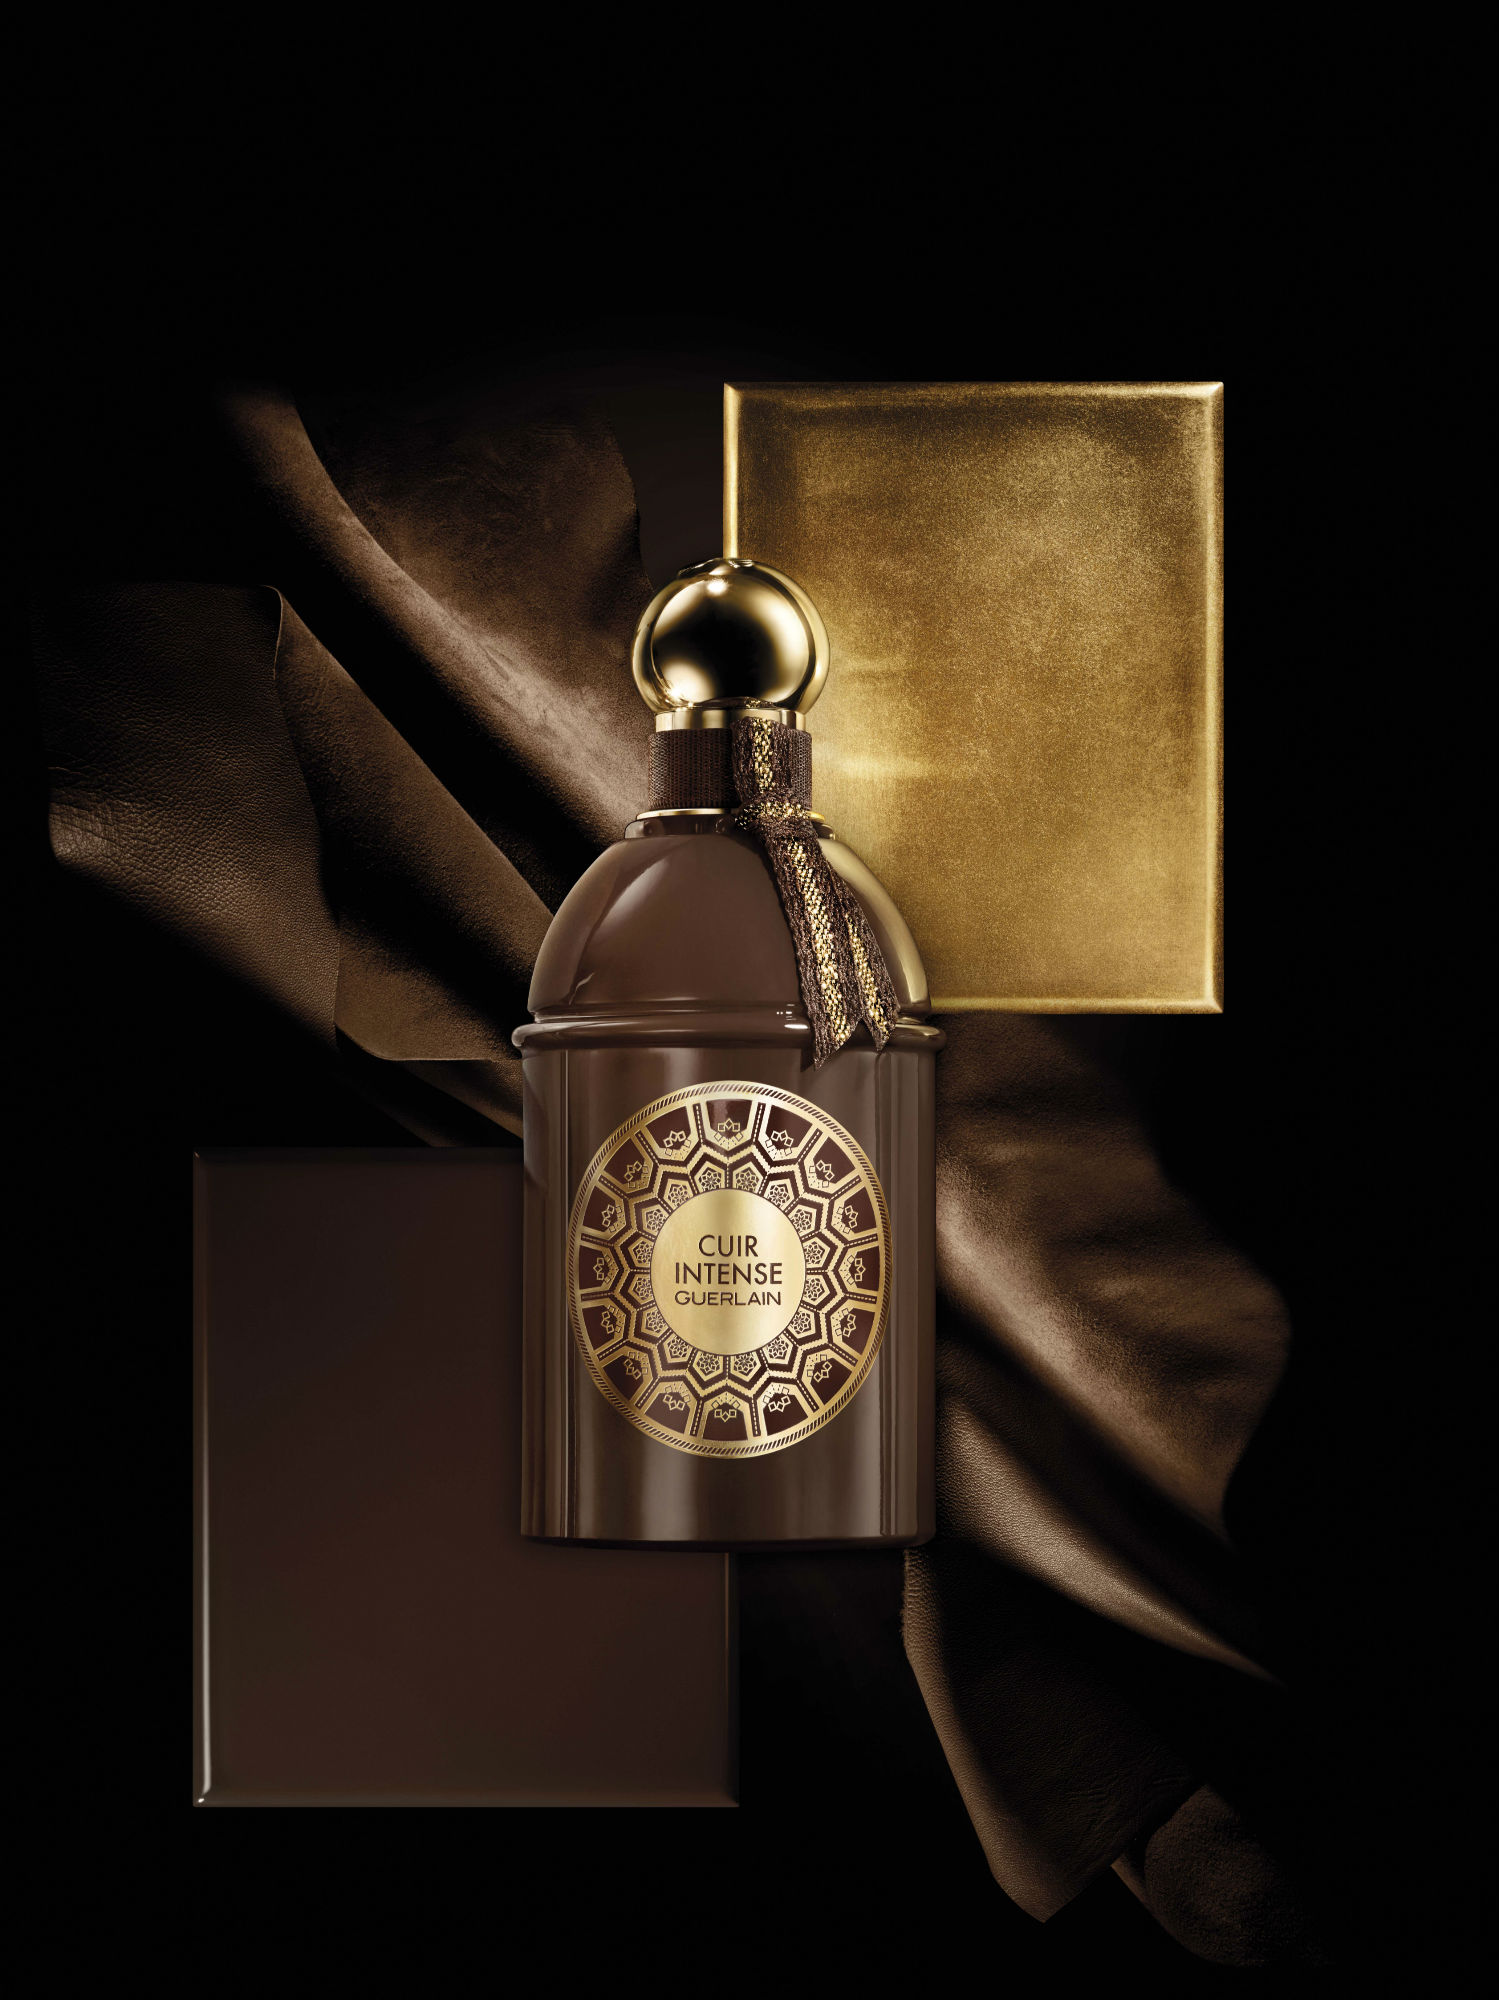 CUIR Intense in the new leather scented perfume from Guerlain